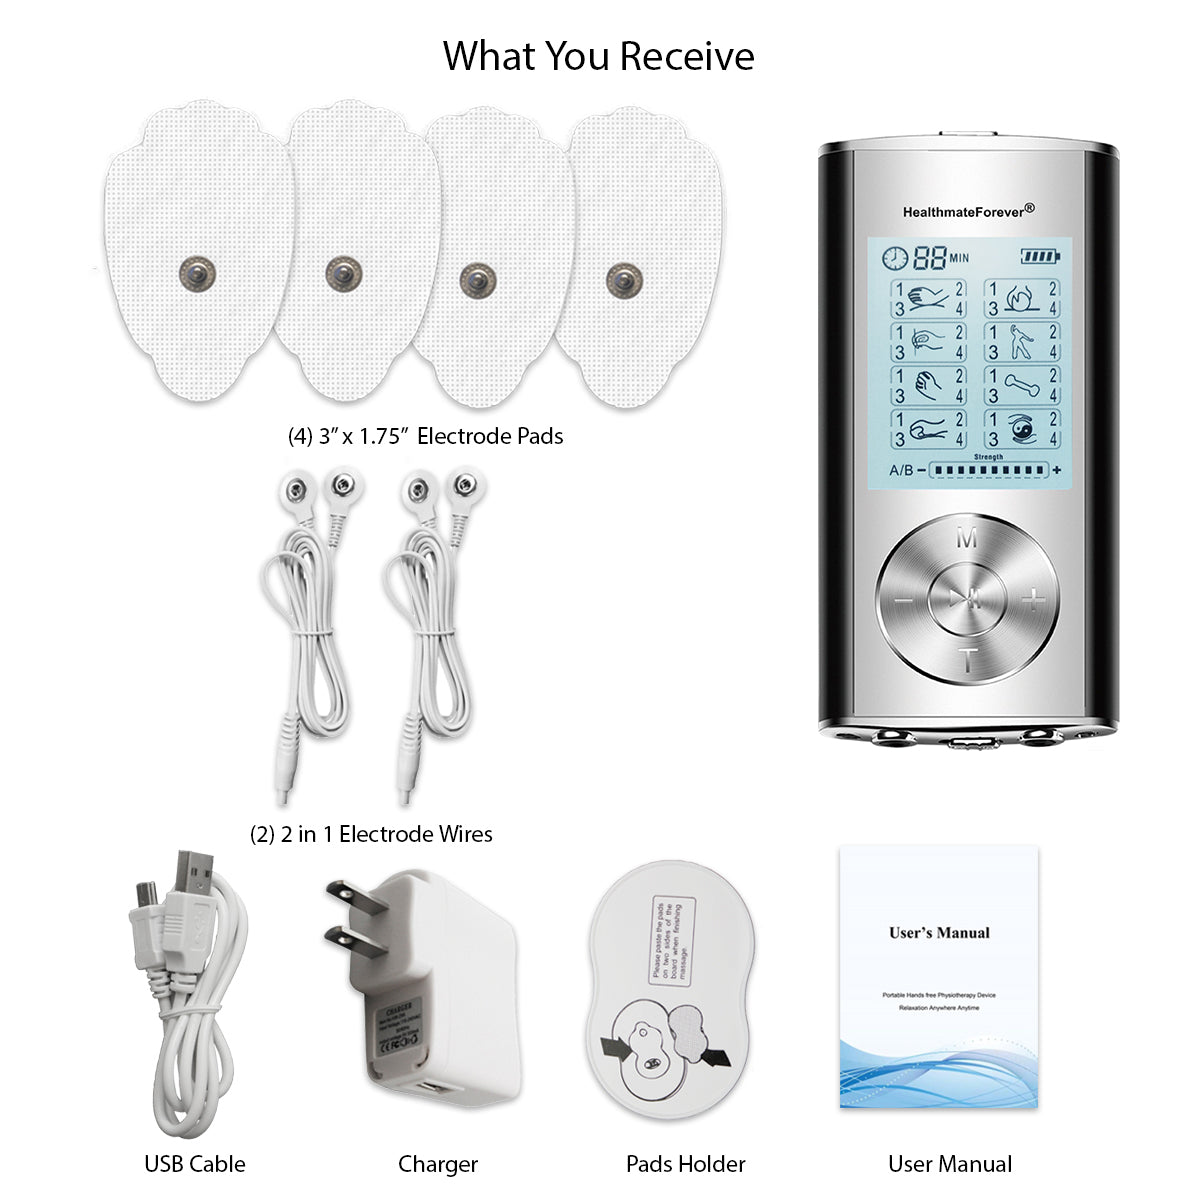 New Arrival - 2020 Version 32 Modes HM32AB TENS Unit & Muscle Stimulator - HealthmateForever